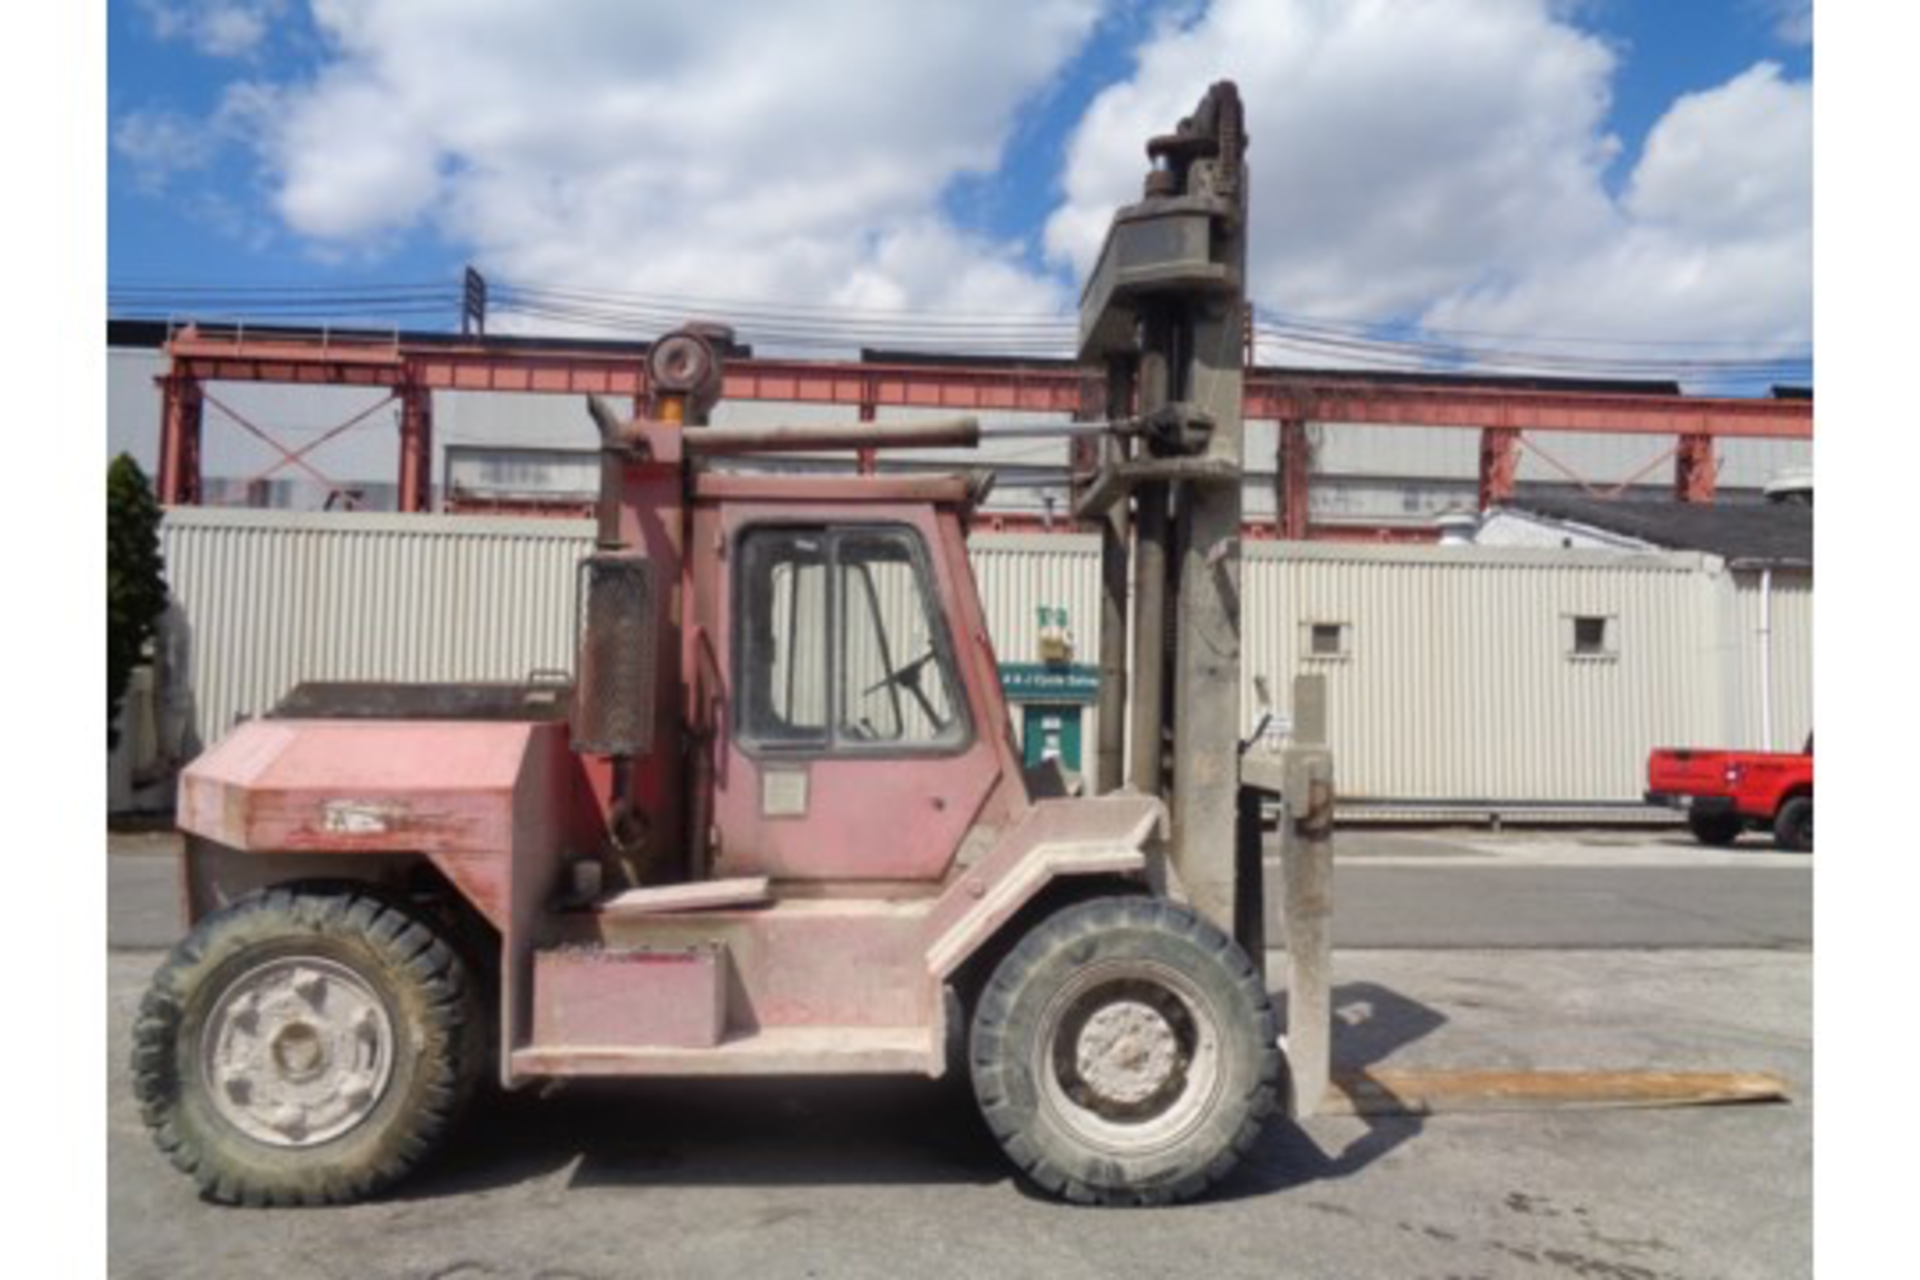 Taylor TE200S 20,000lb Forklift - Image 2 of 10